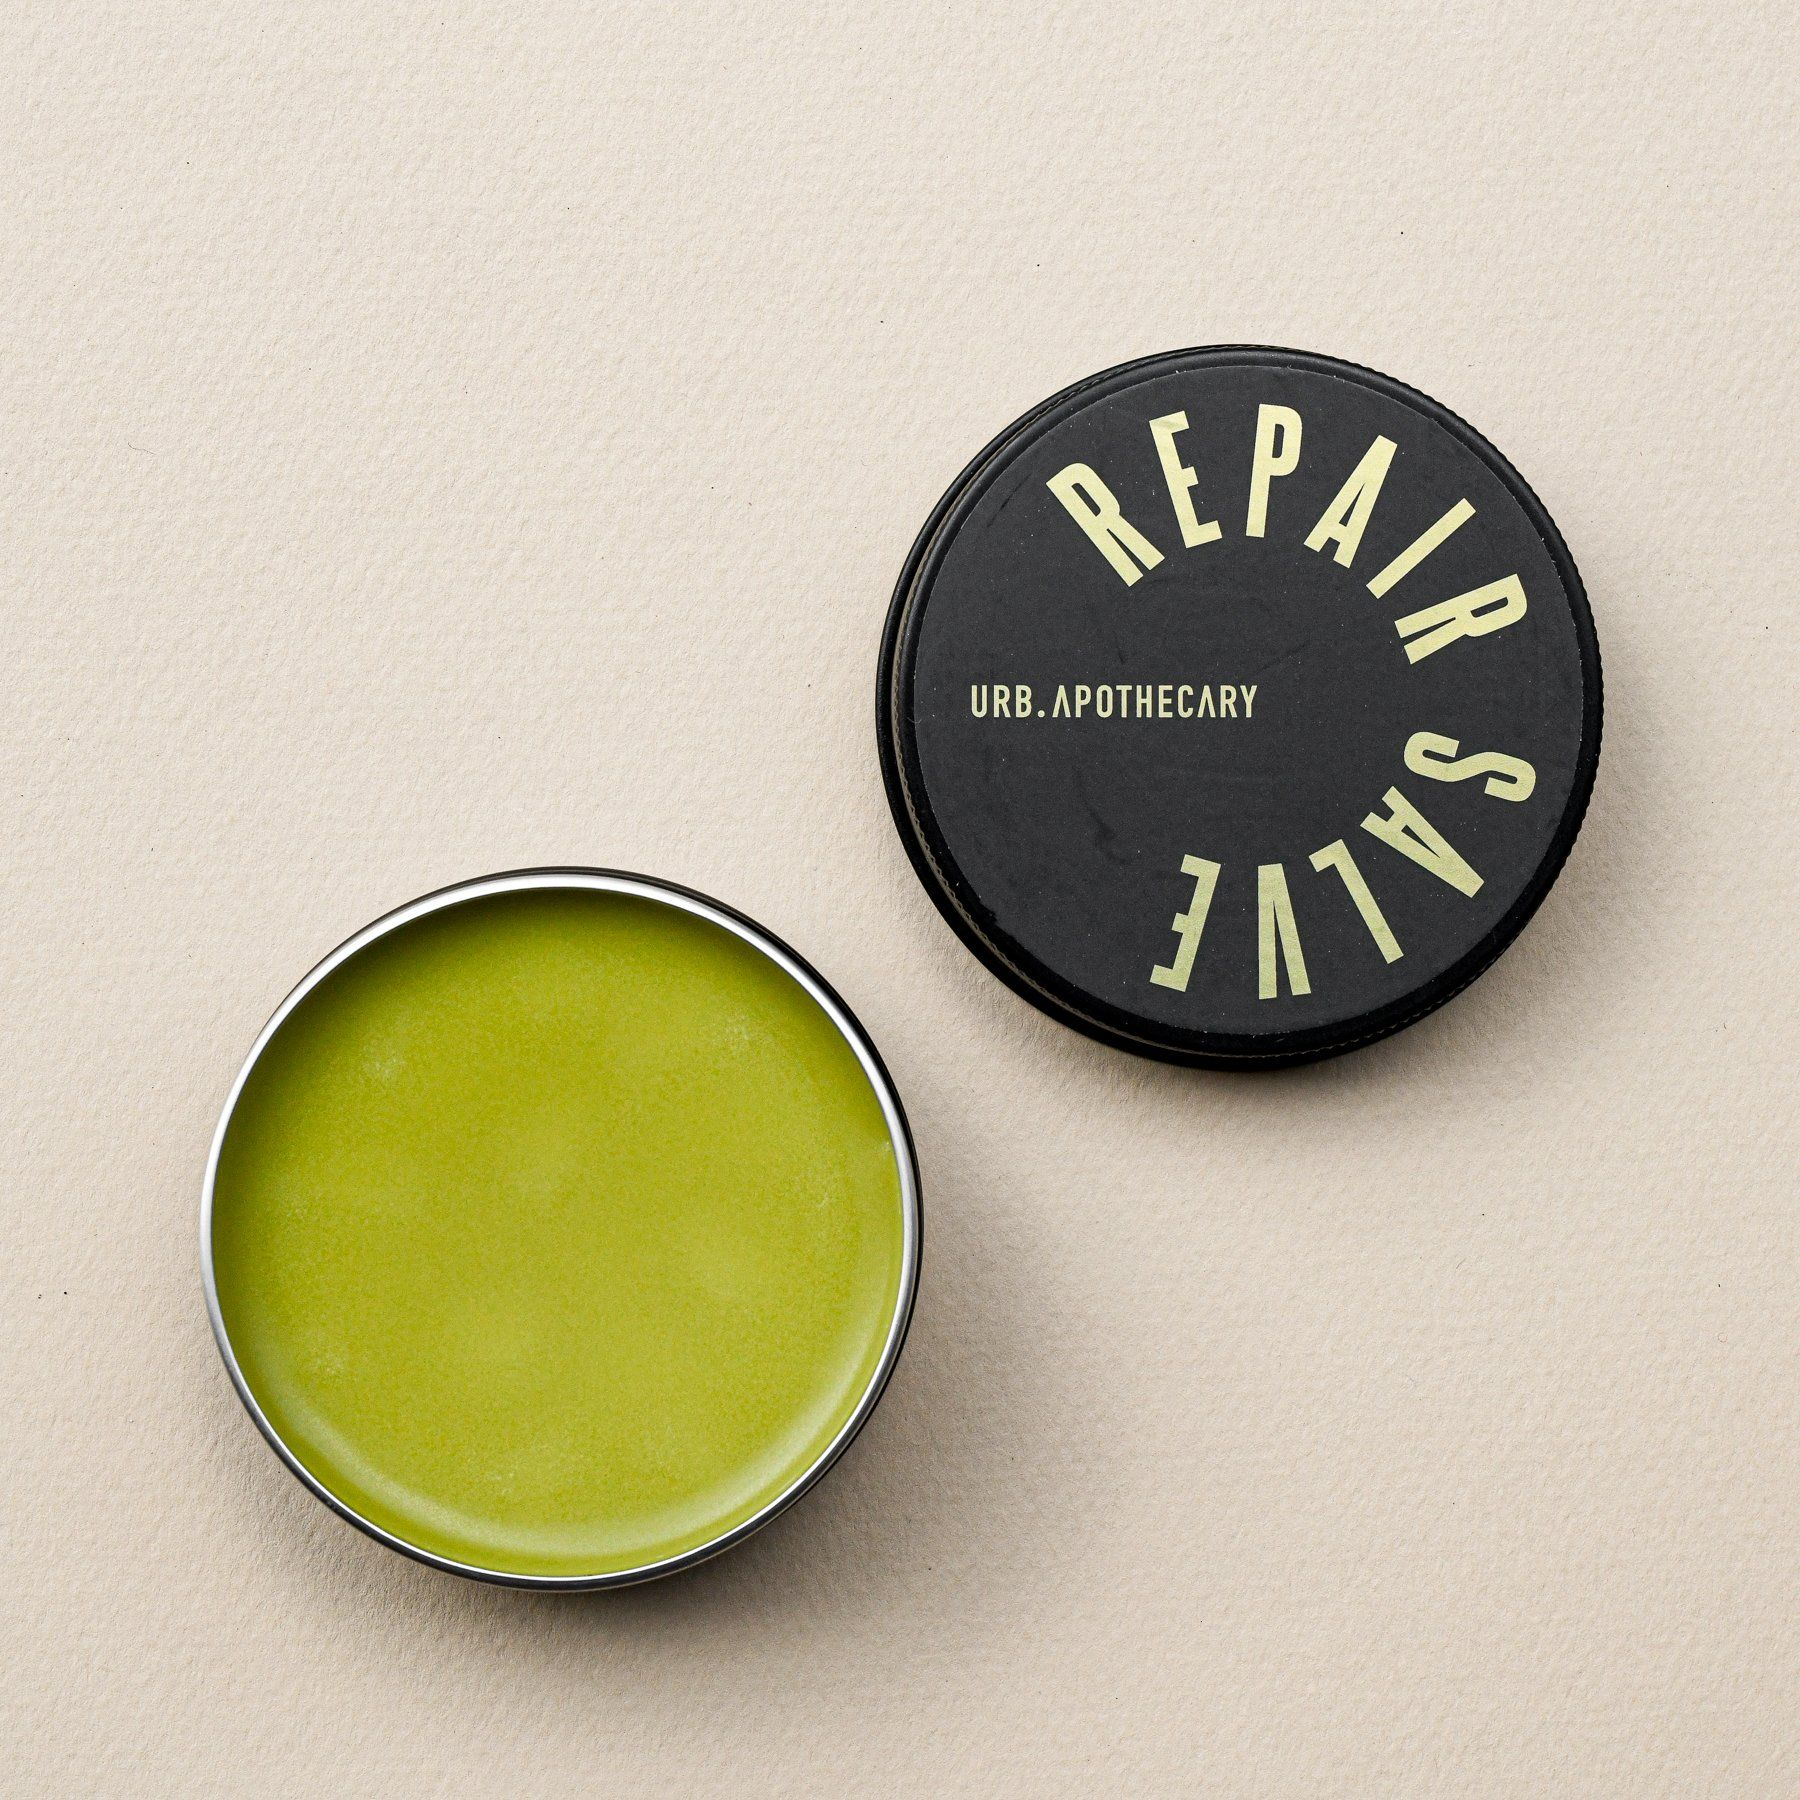 A first aid kit staple, but make it all-natural and in seriously attractive, recyclable packaging. The ingredients in this all-purpose herbal salve aid the healing of scrapes, nicks, cuts, and pimples; helps ease and soothe rashes, razor burn, eczema, bug bites, burns, chapped lips, and hands. Along with this Muscle Joint Salve Stick, this has upped our first aid kit game exponentially. Use Instructions: With clean hands, scoop out fingernail size amount, warm-up, and apply to problem areas. For